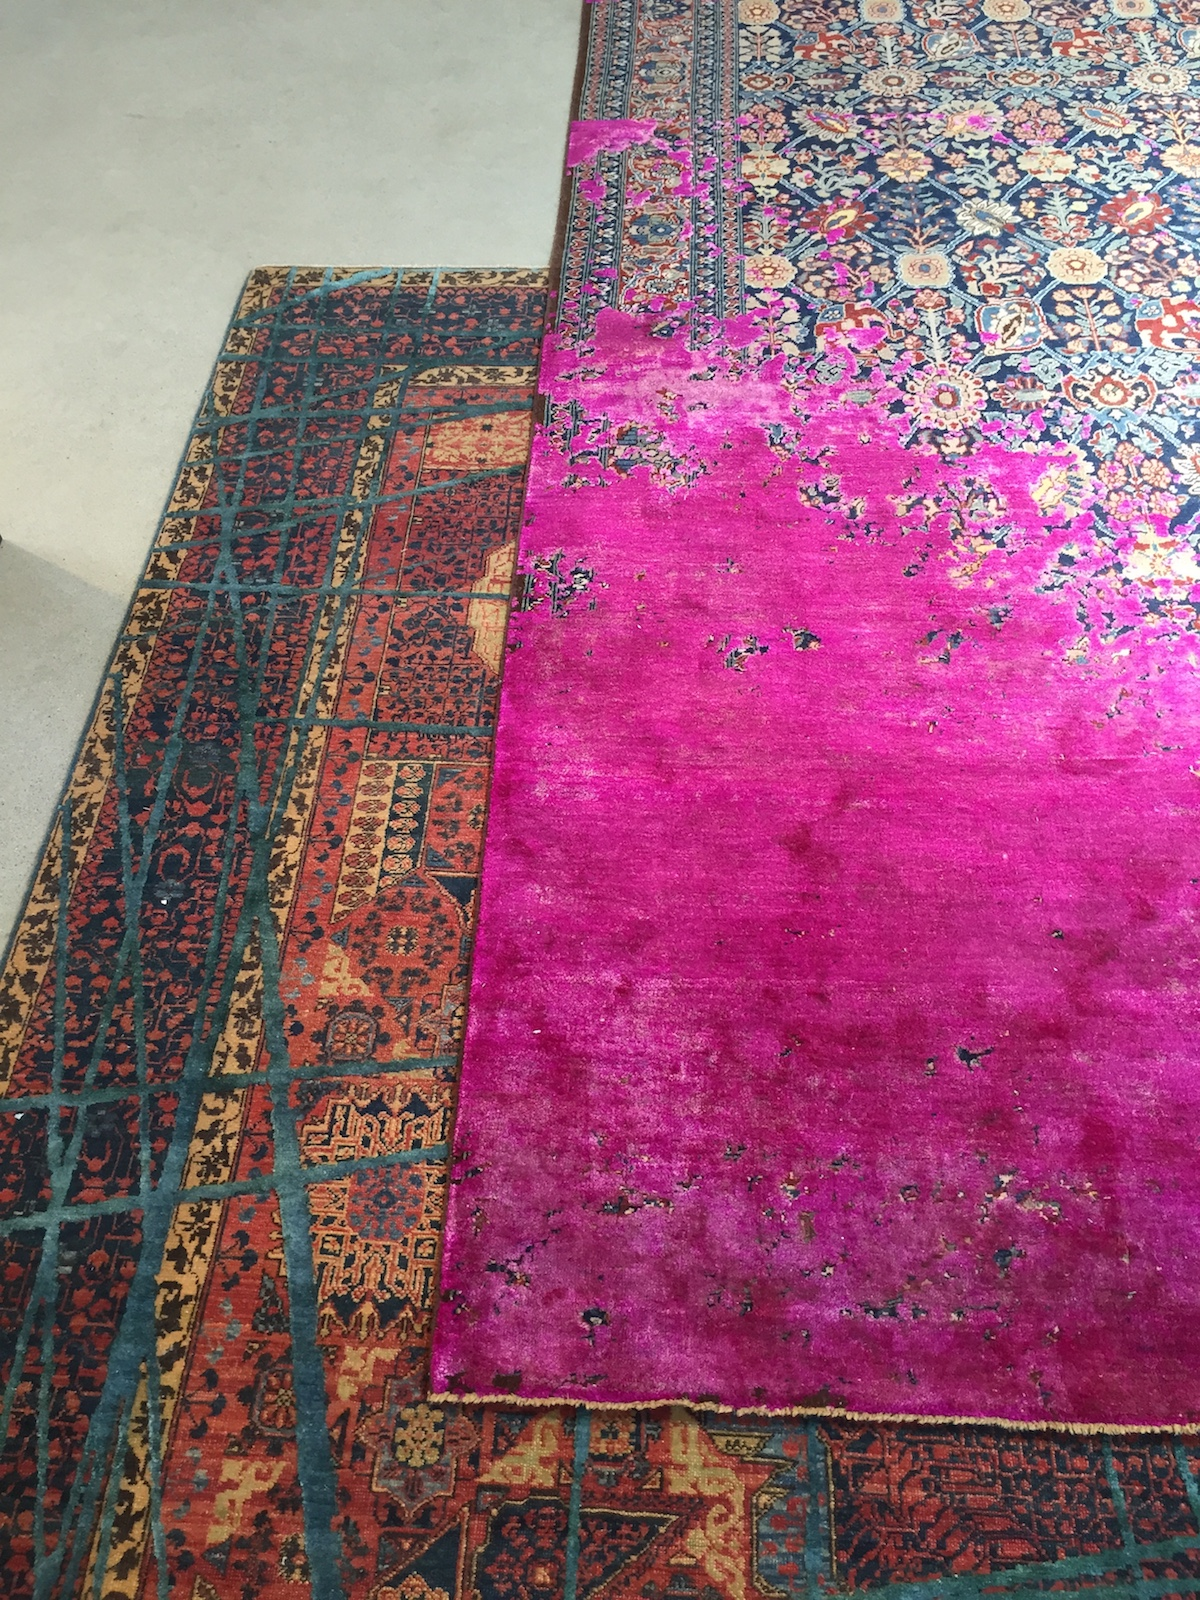 jann kath copy SMALL.jpeg